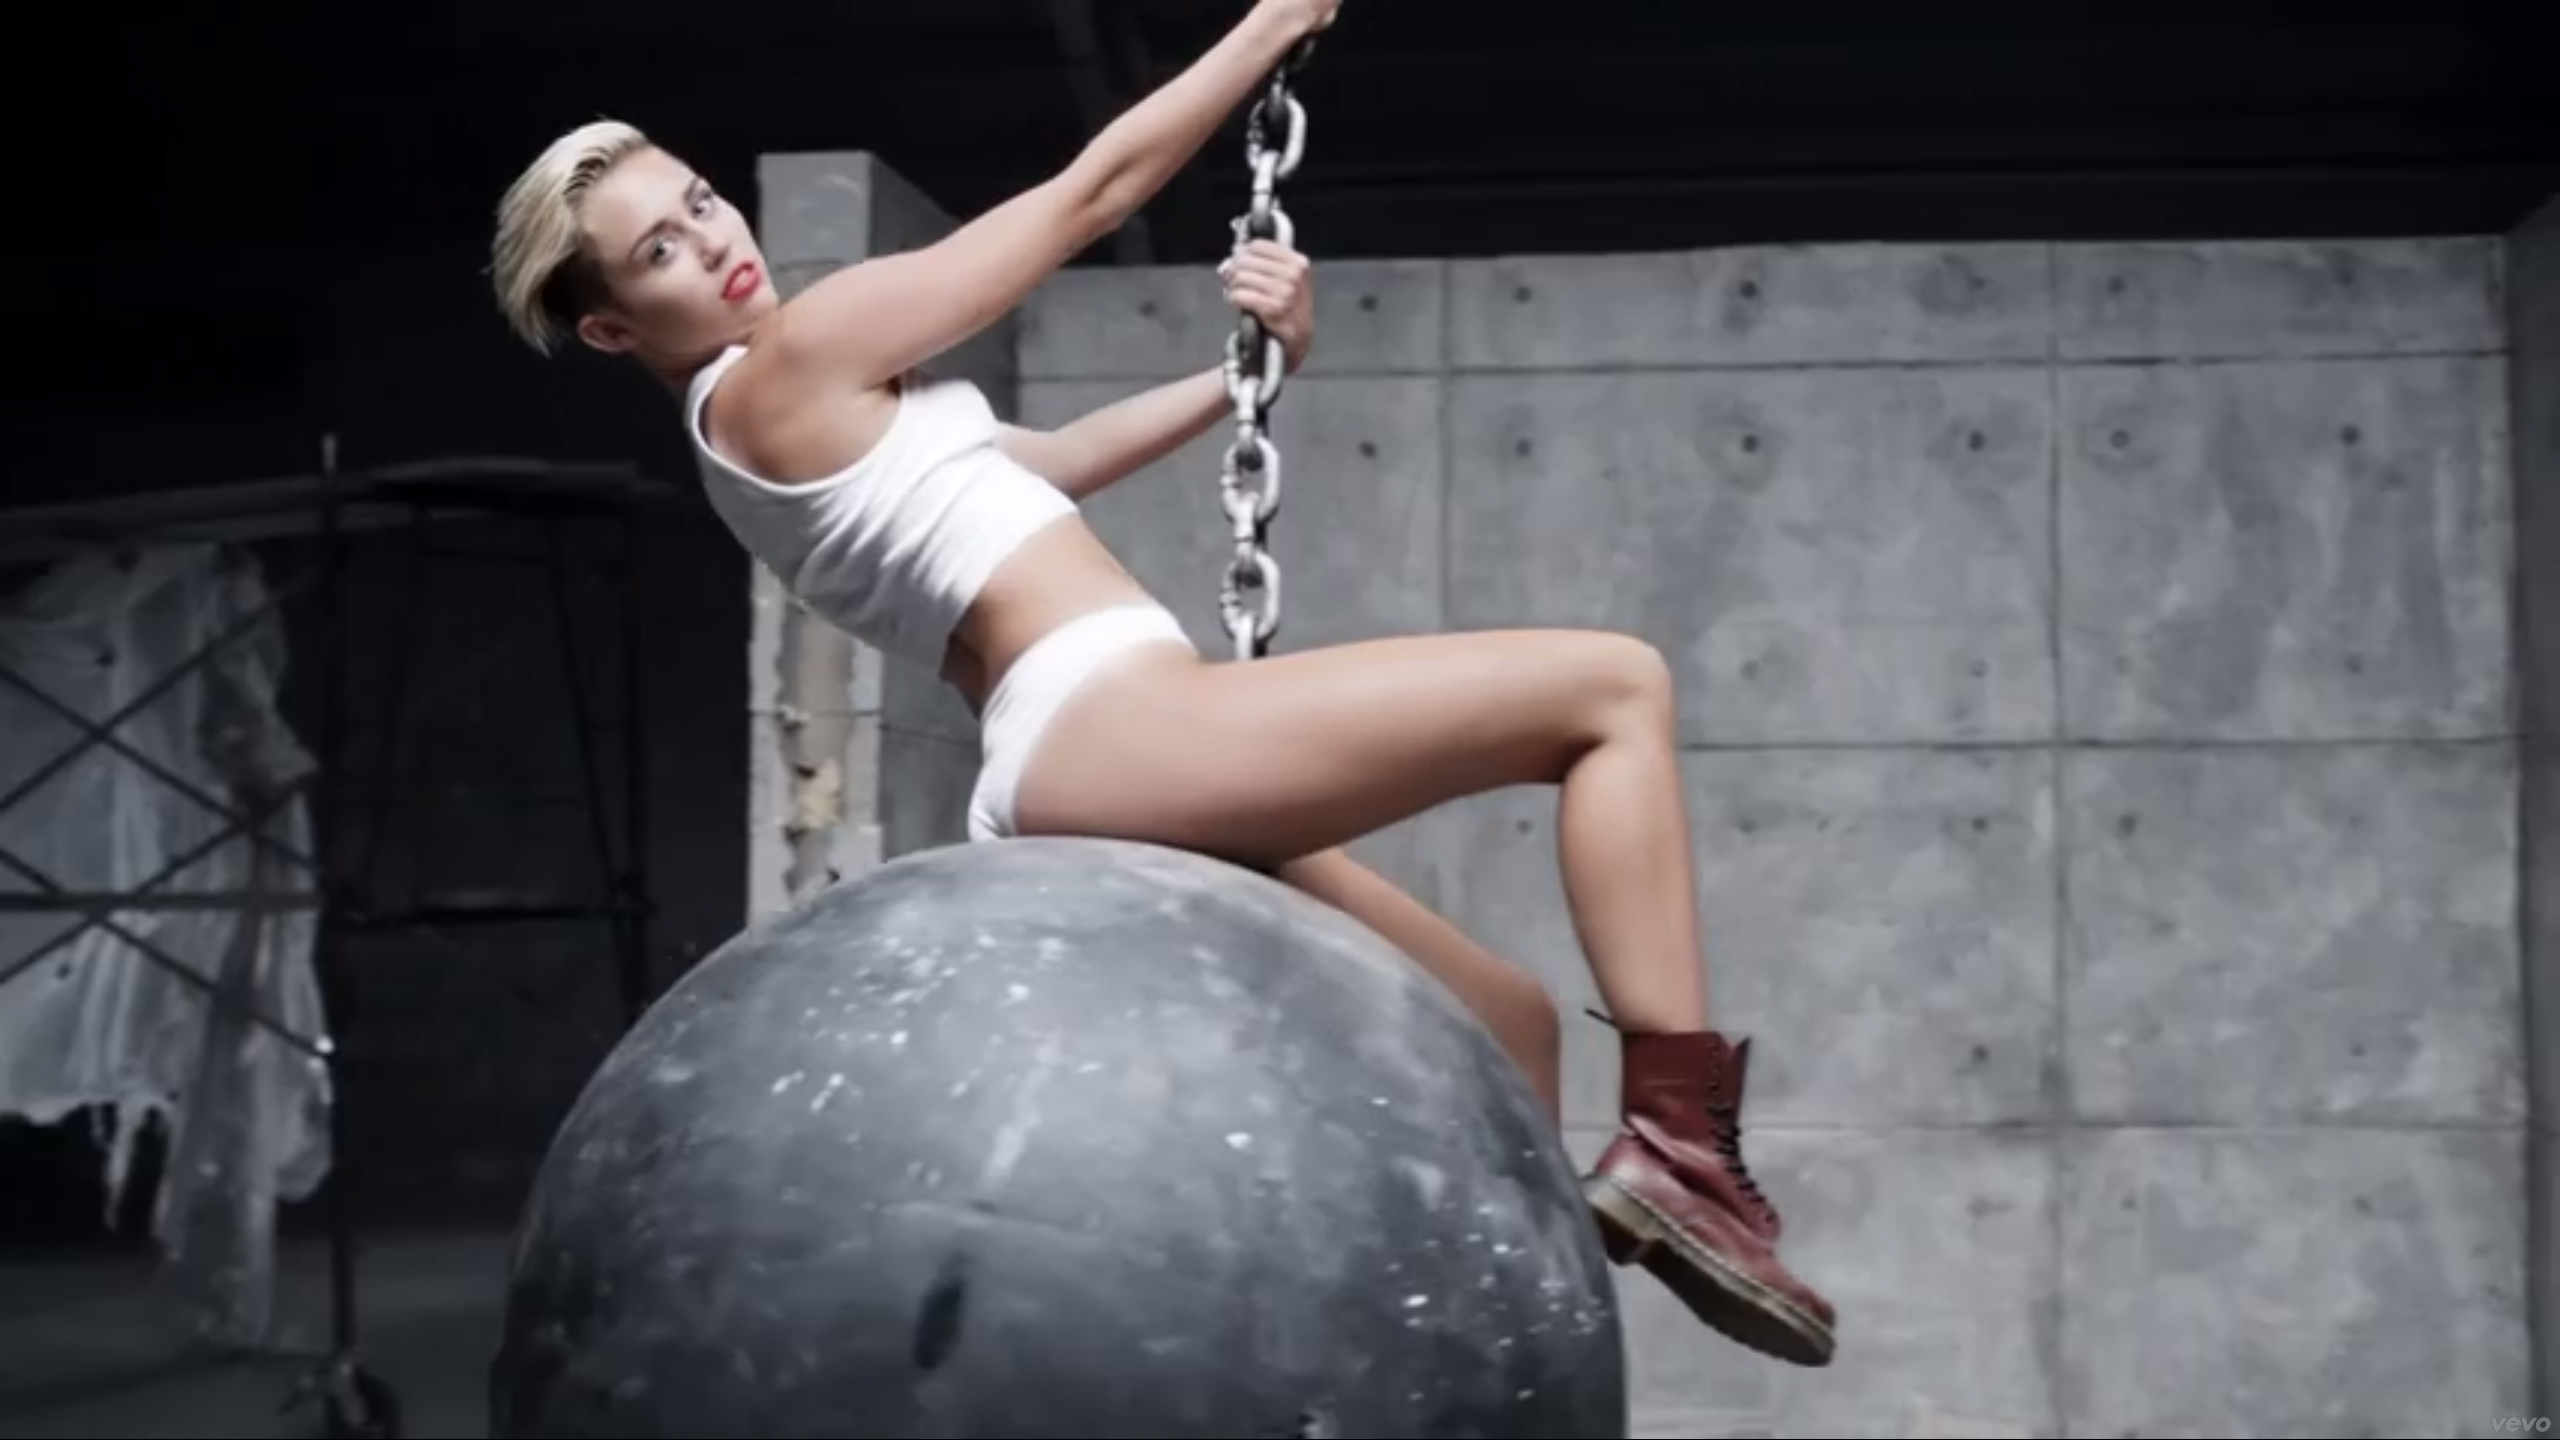 miley-cyrus-wrecking-ball-costume-wallpaper-3.jpg